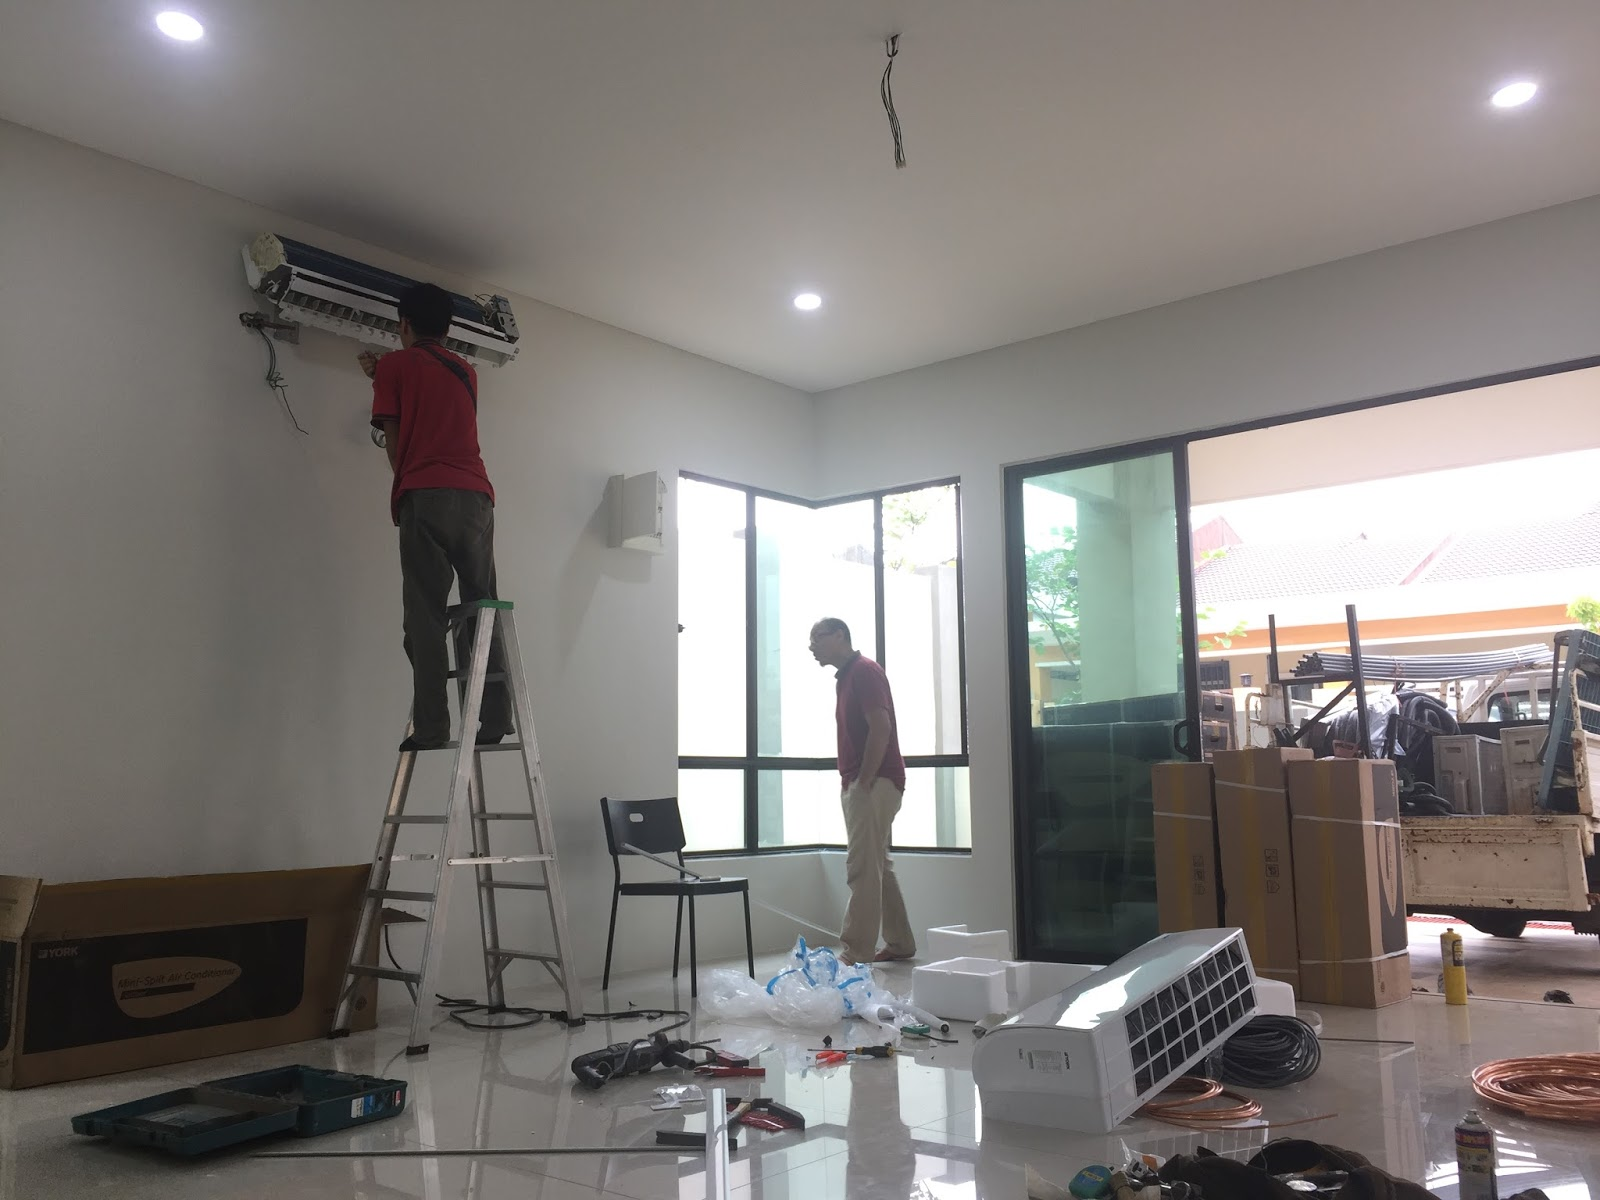 Air Cond - Wiring Rumah Yang Problem.